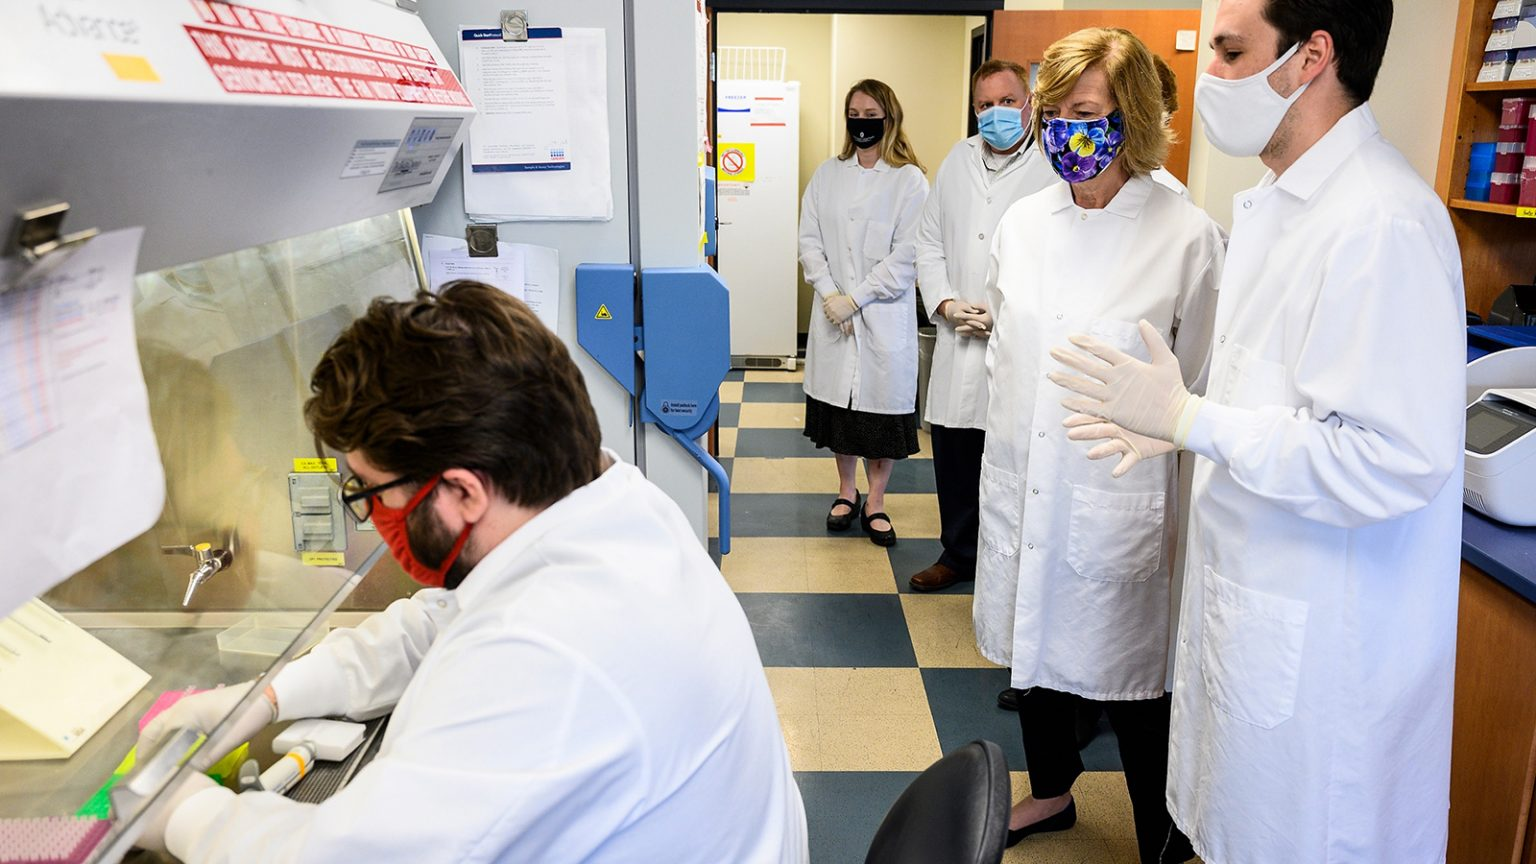 Sen. Tammy Baldwin and scientists watch research in a laboratory.